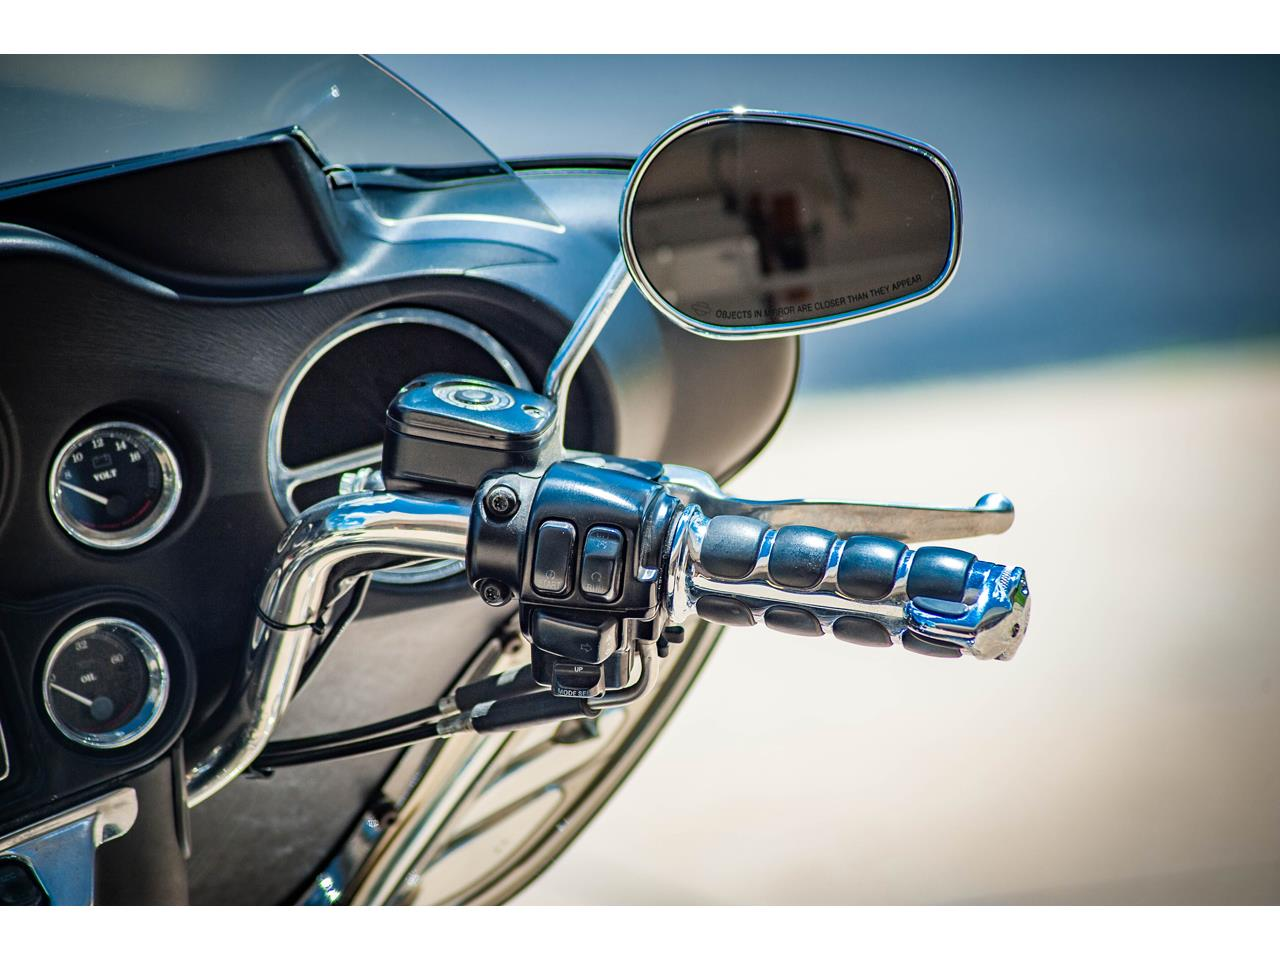 Large Picture of 2004 Harley-Davidson Motorcycle Offered by Gateway Classic Cars - St. Louis - QD6F